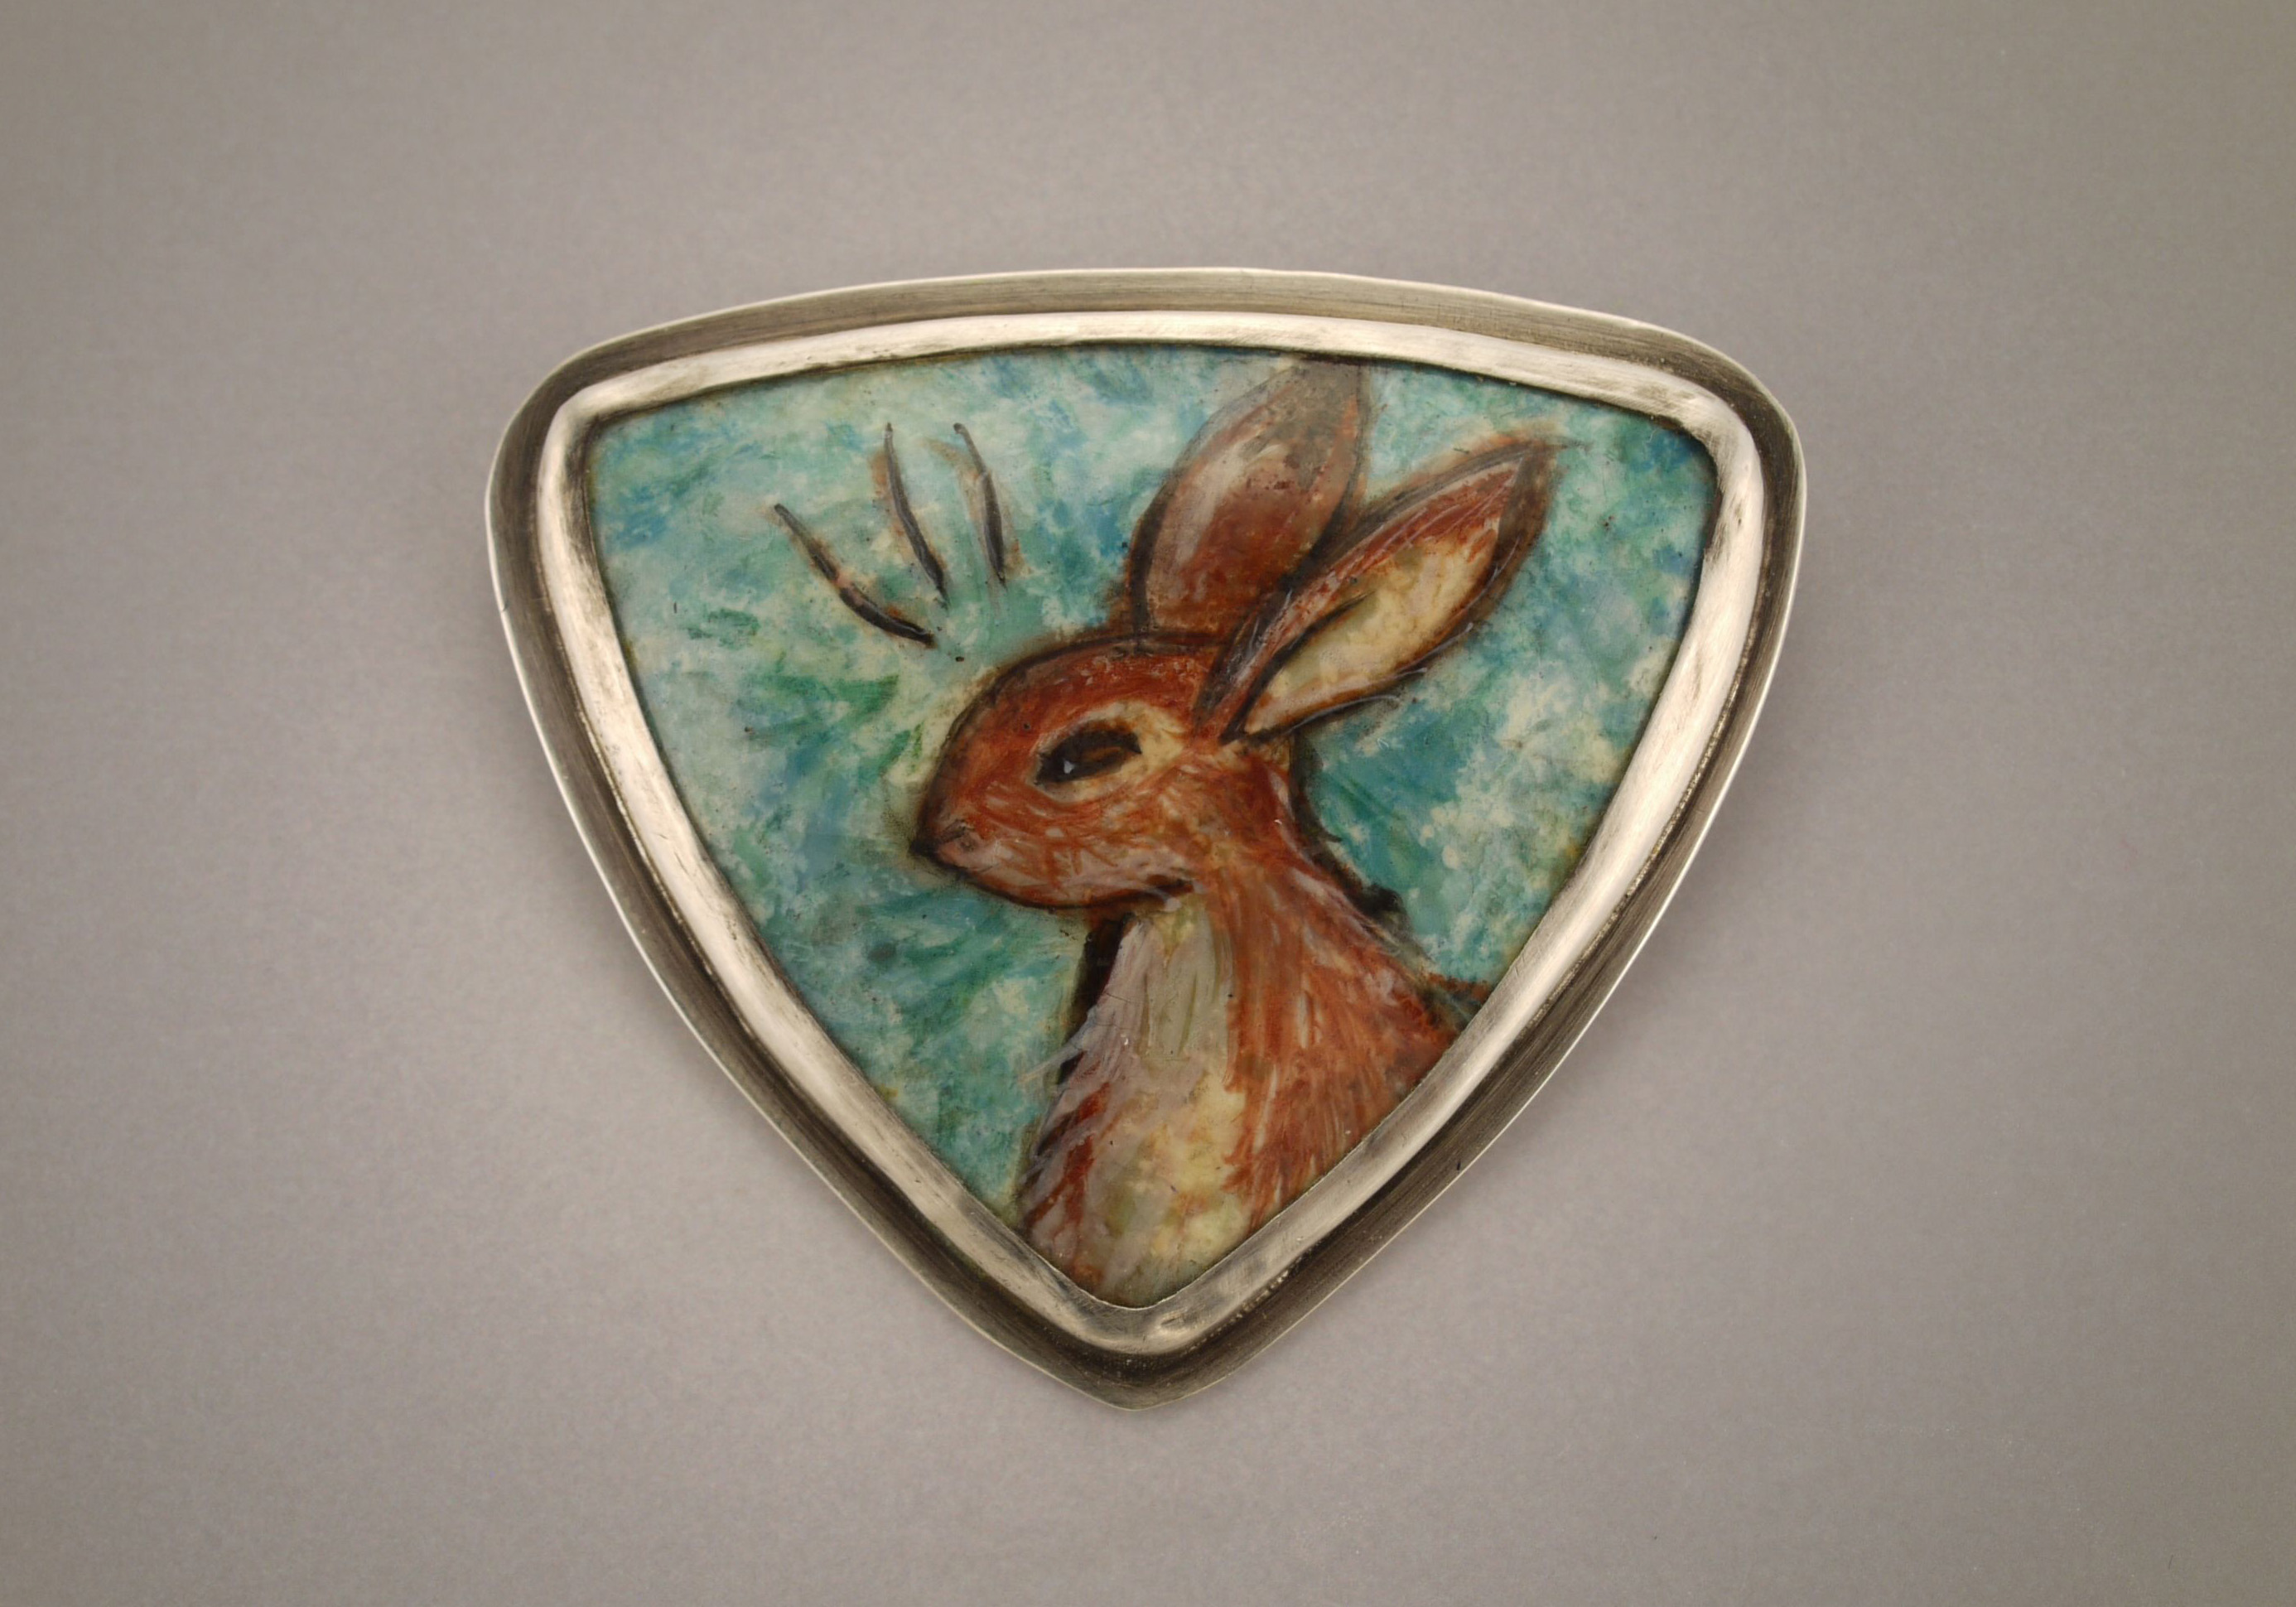 Painted Rabbit Pin